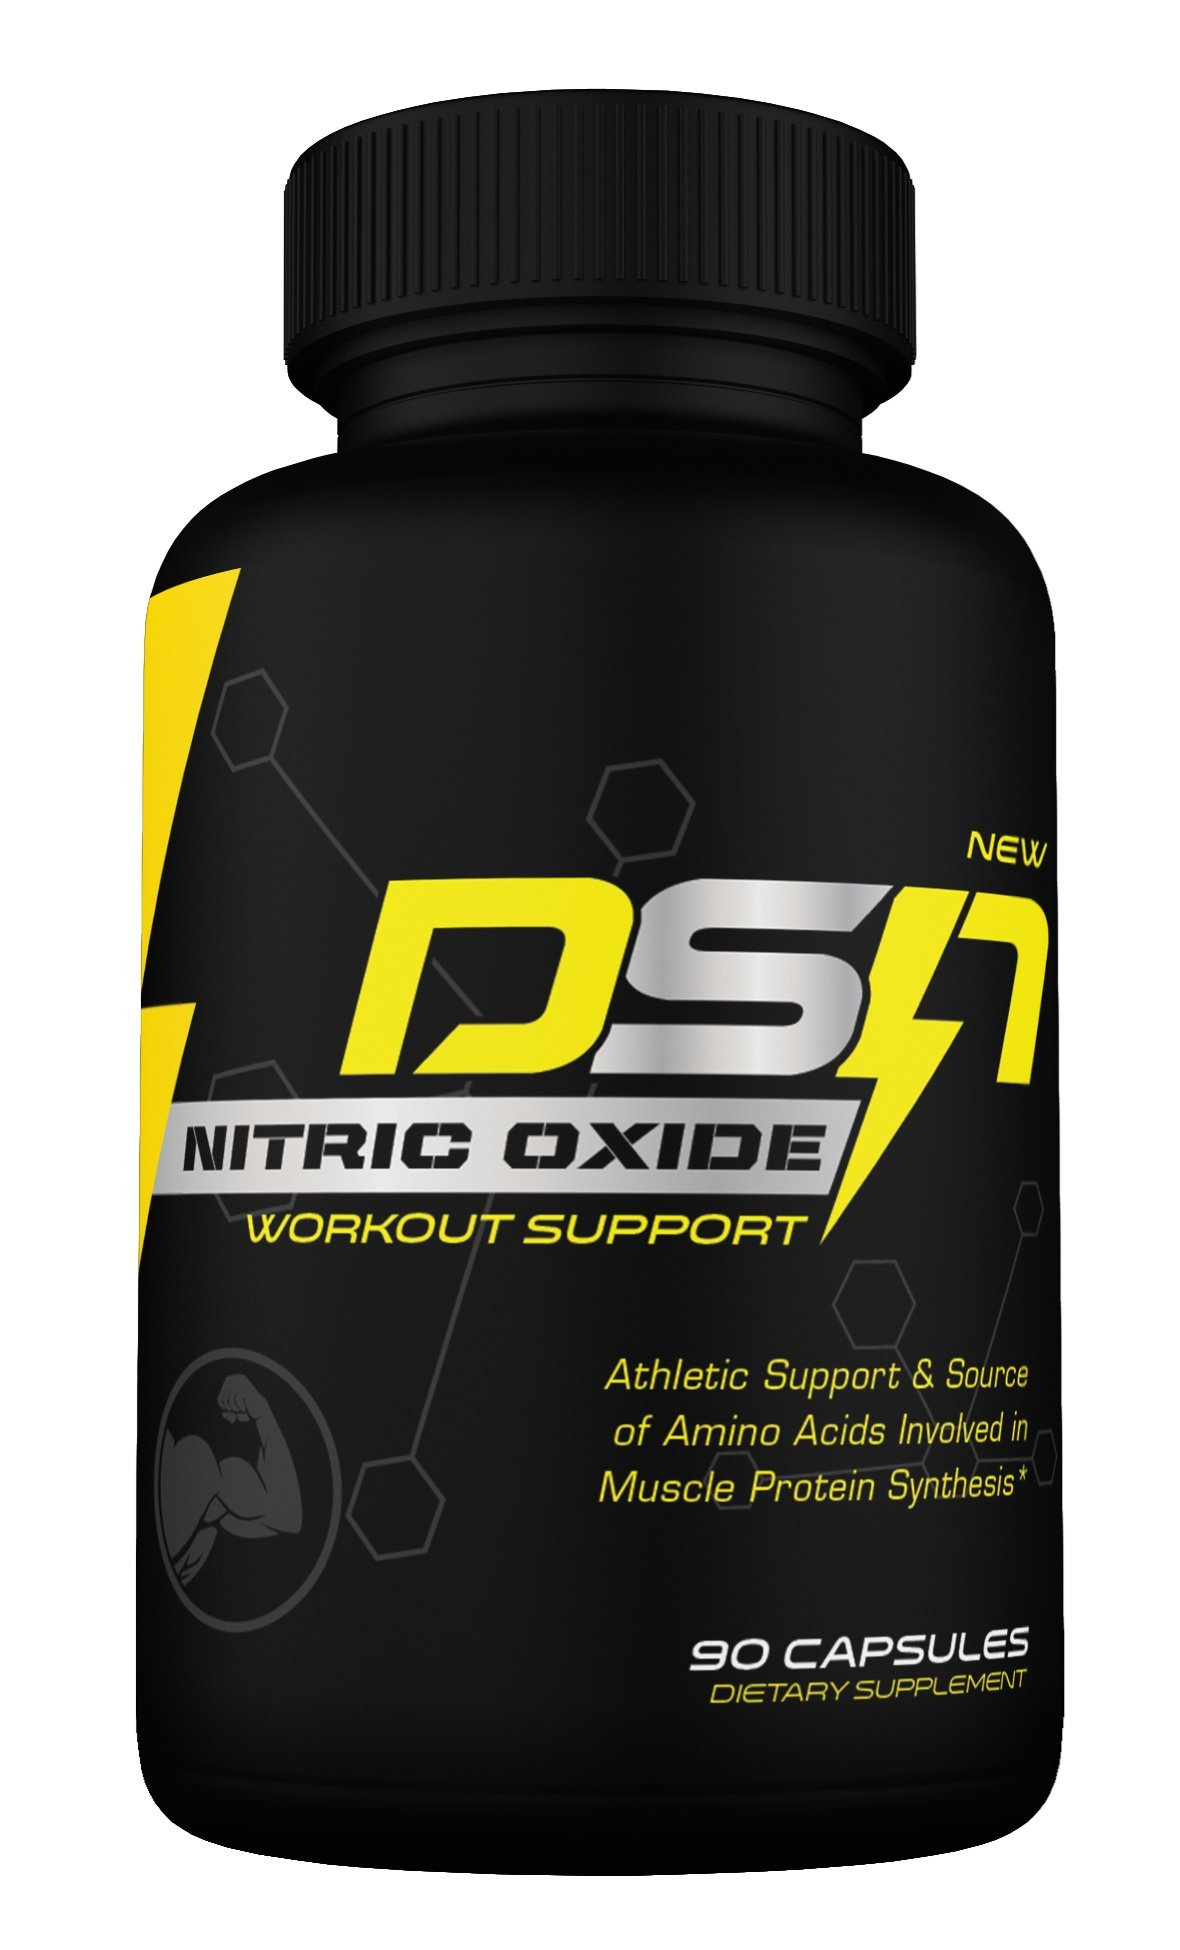 DSN Nitric Oxide, Dyna Storm Nutrition Nitric Oxide Workout Support capsules, L-Arginine L-Citrulline & vitamin blend, 90 capsules (30 day supply)